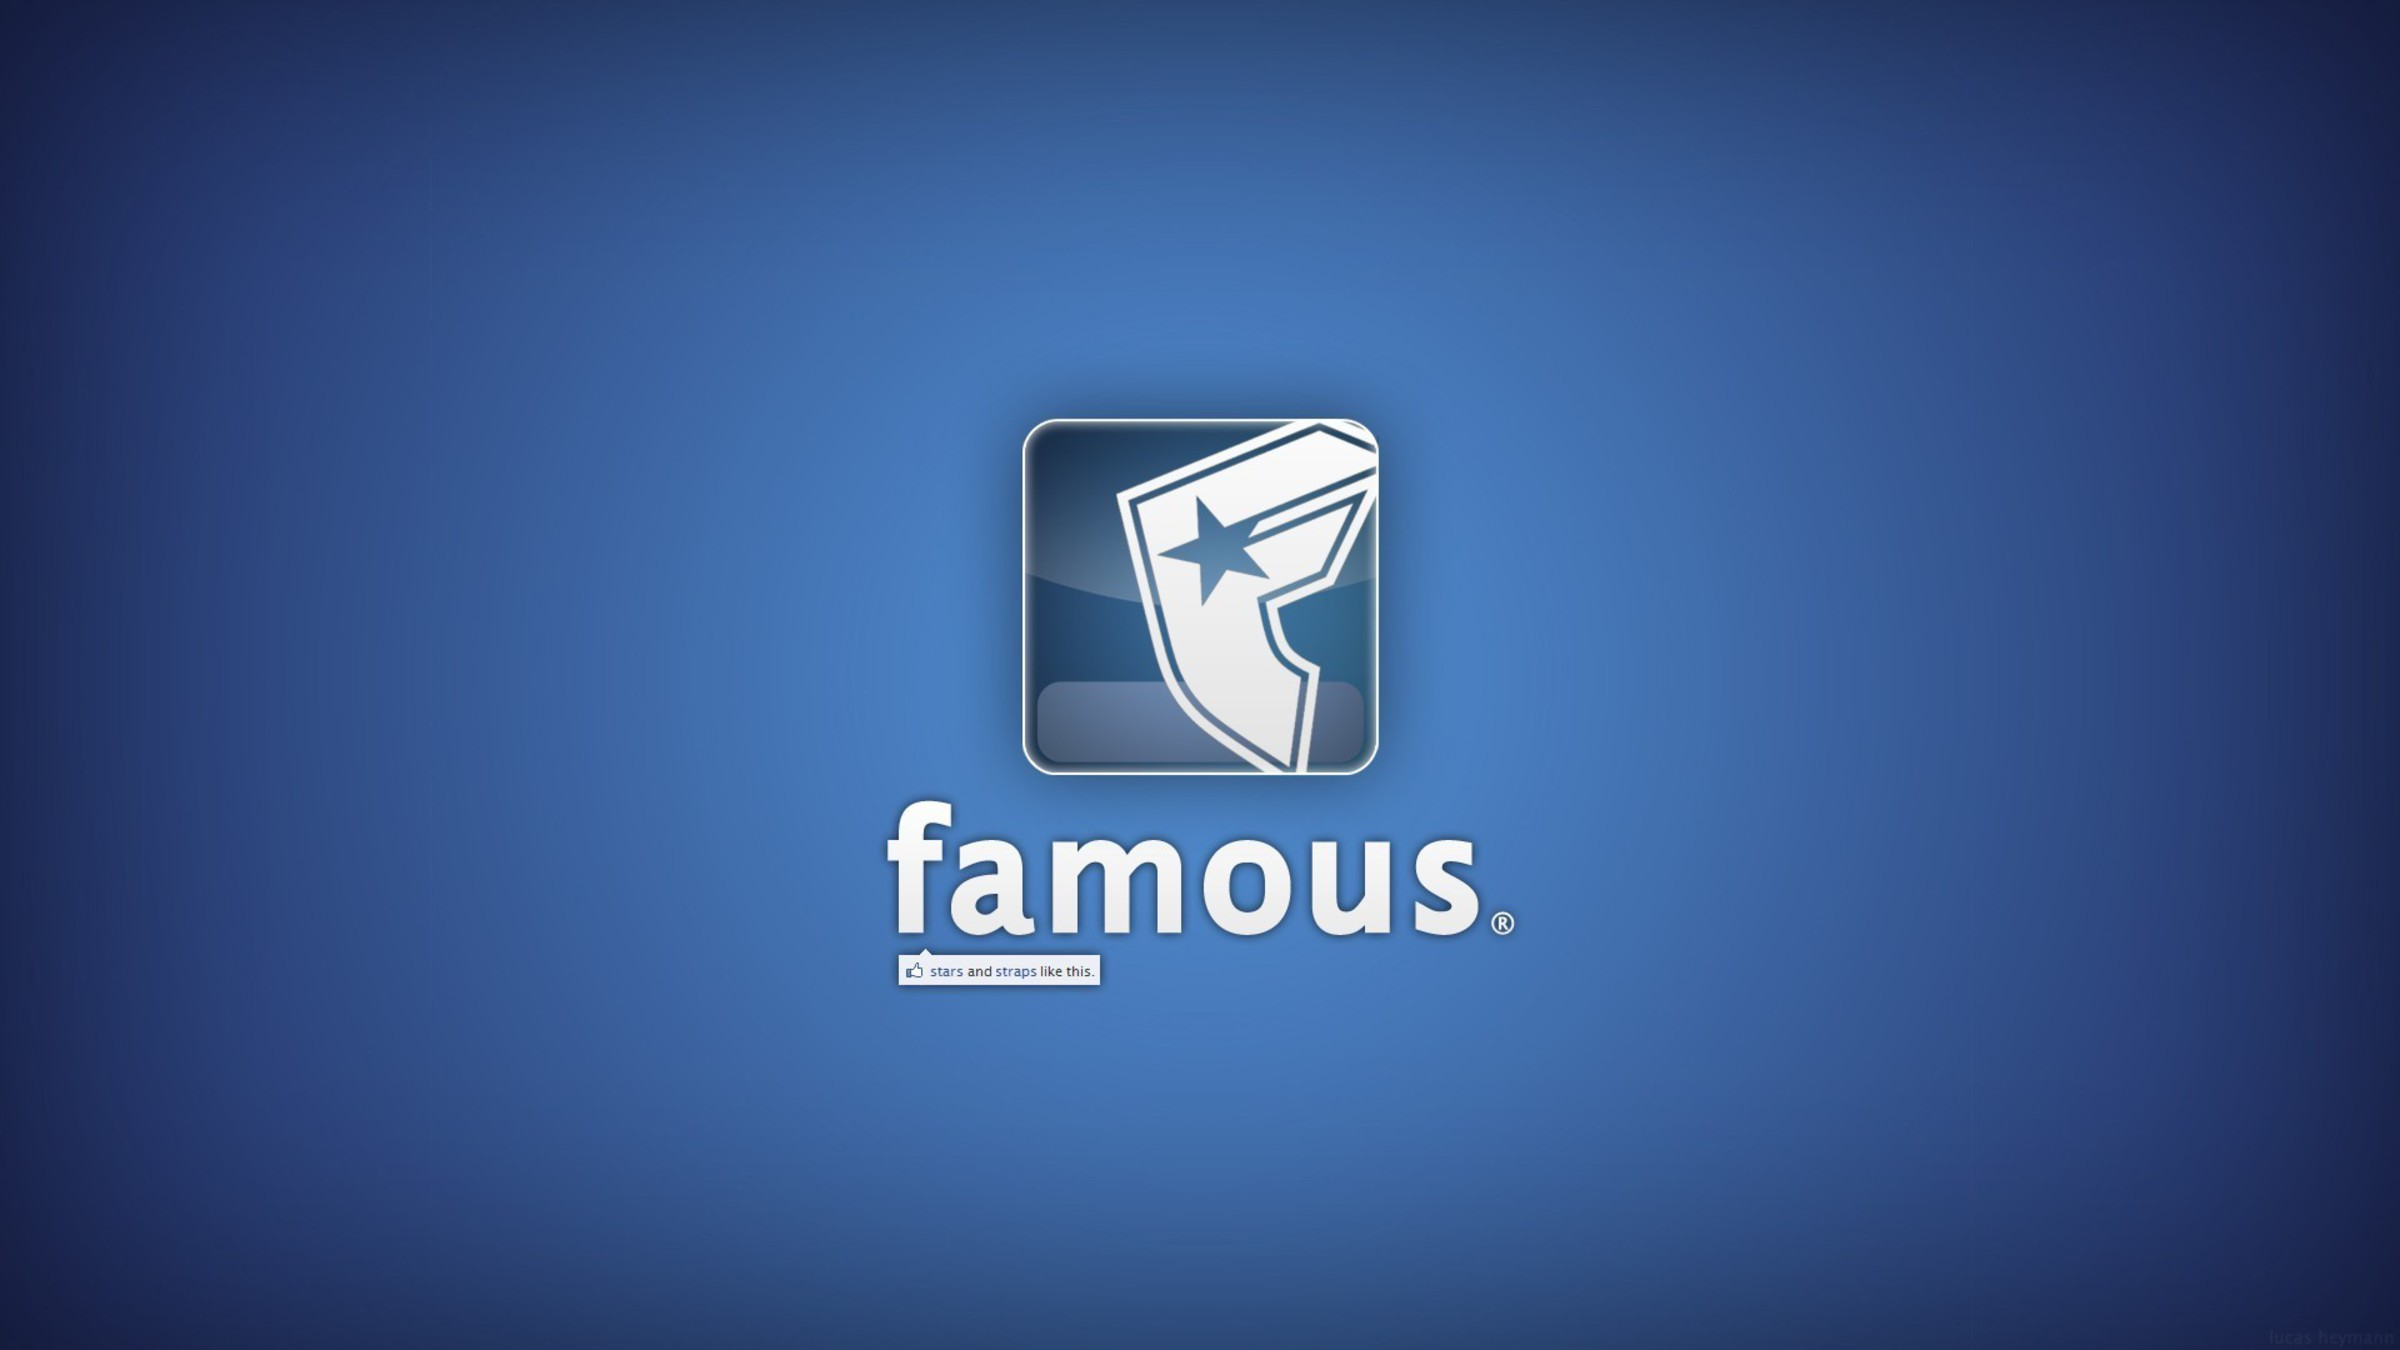 Famous Wallpapers For Facebook